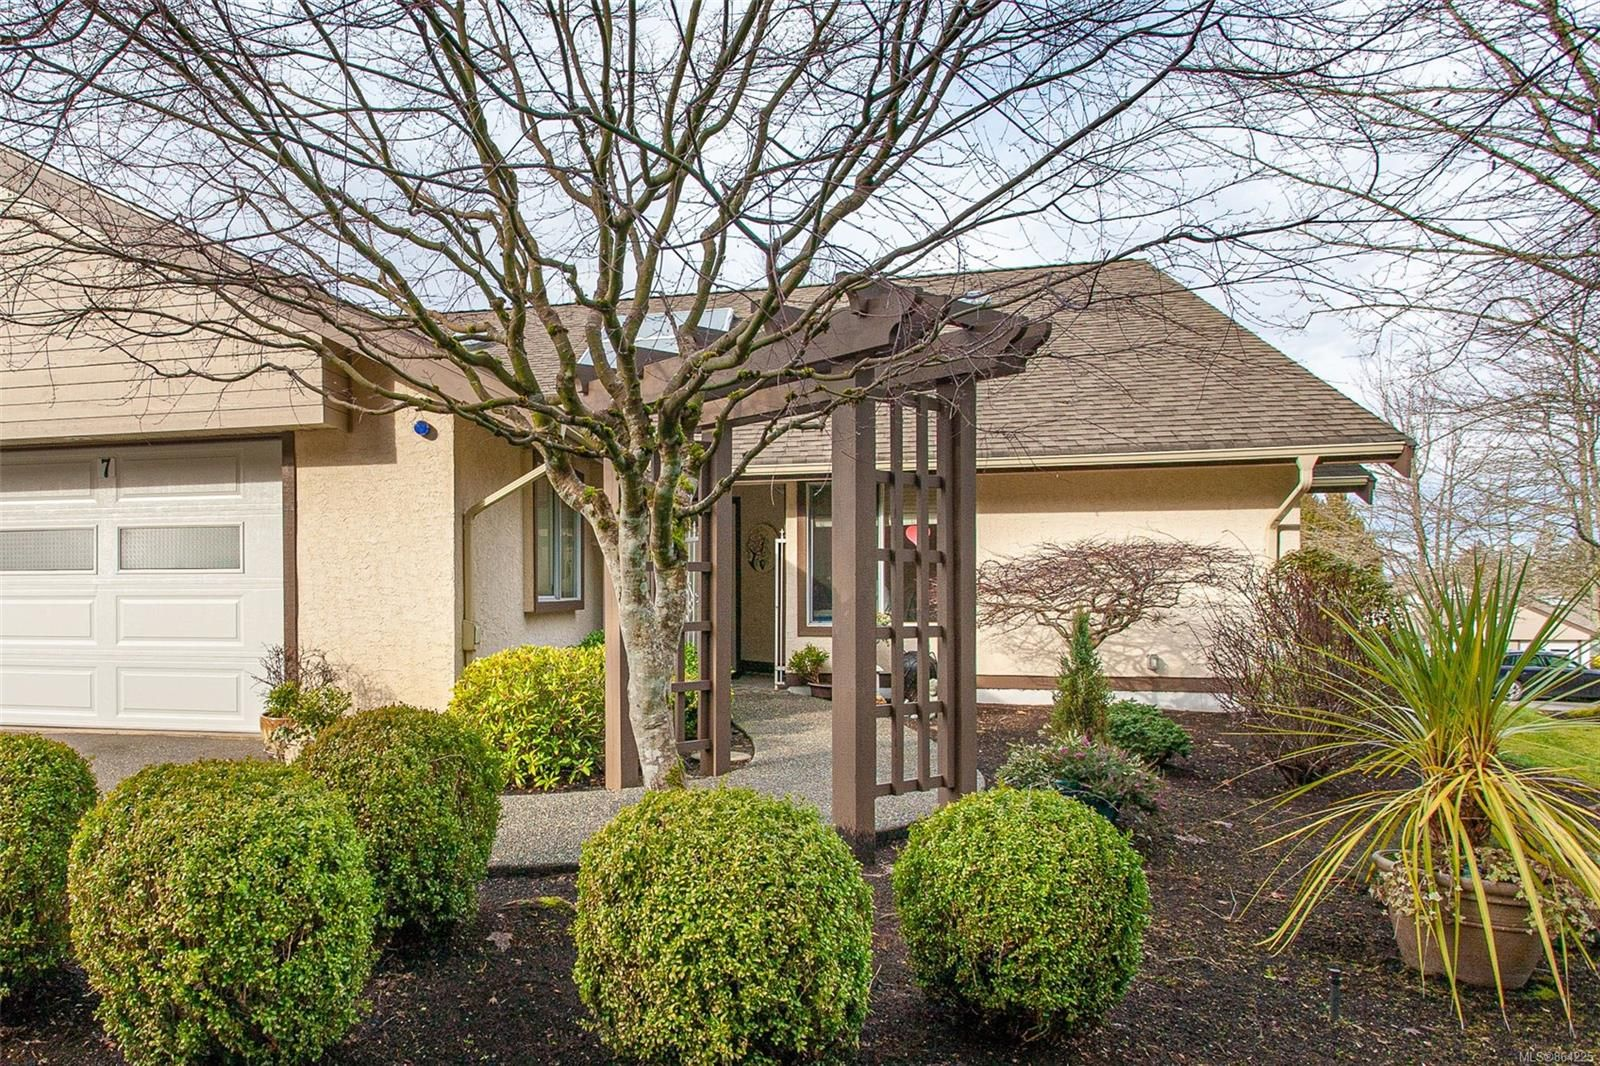 Main Photo: 7 885 S Berwick Rd in : PQ Qualicum Beach Row/Townhouse for sale (Parksville/Qualicum)  : MLS®# 864225